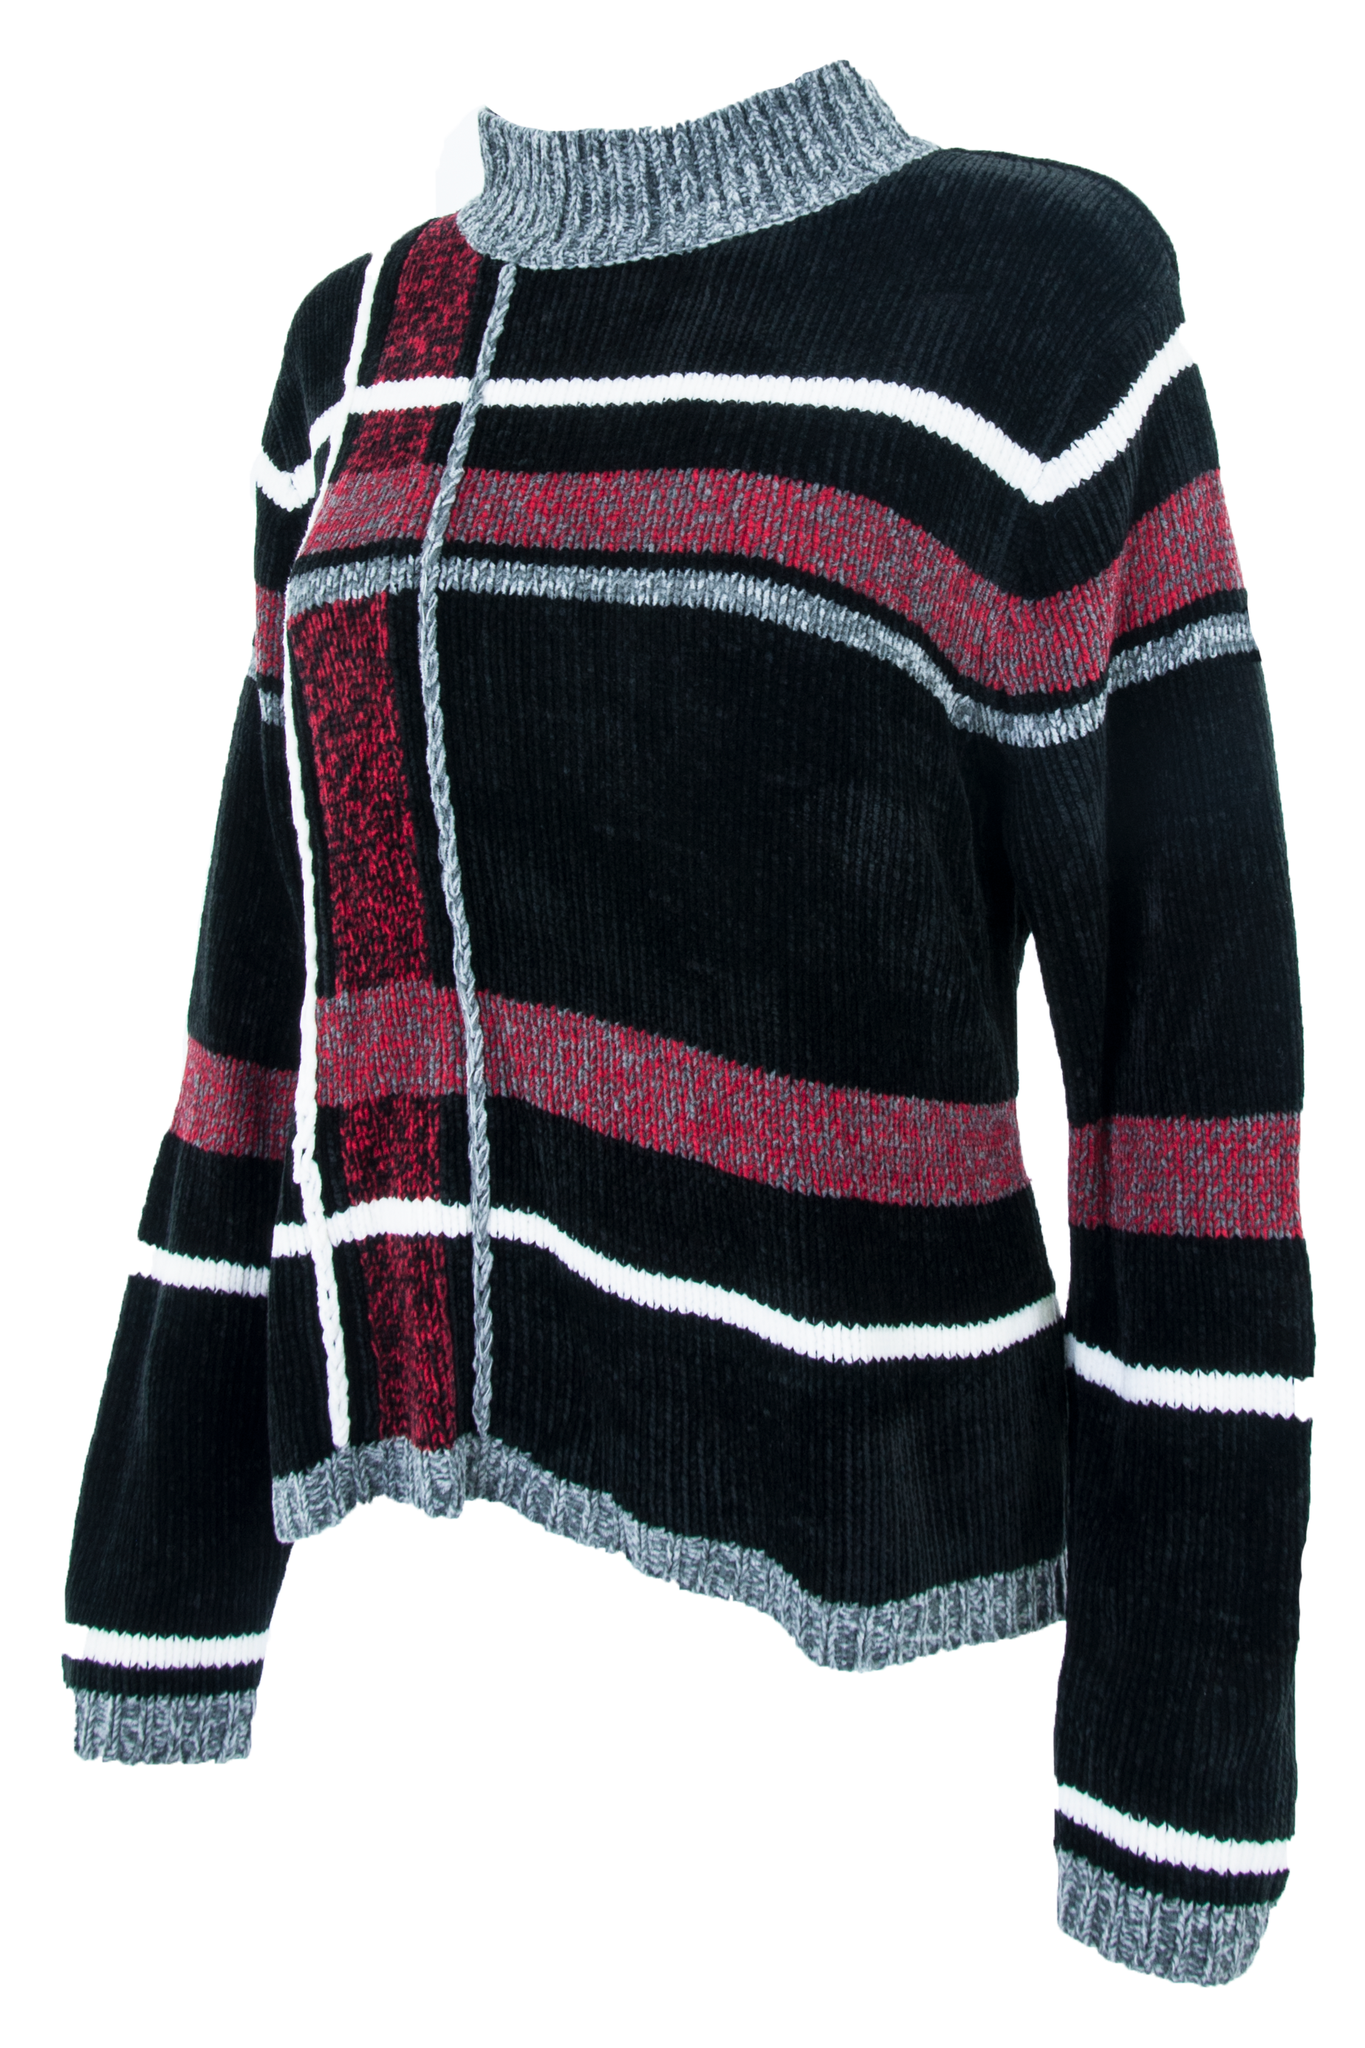 vintage black velour sweater with red and grey grid pattern throughout and mock neck.